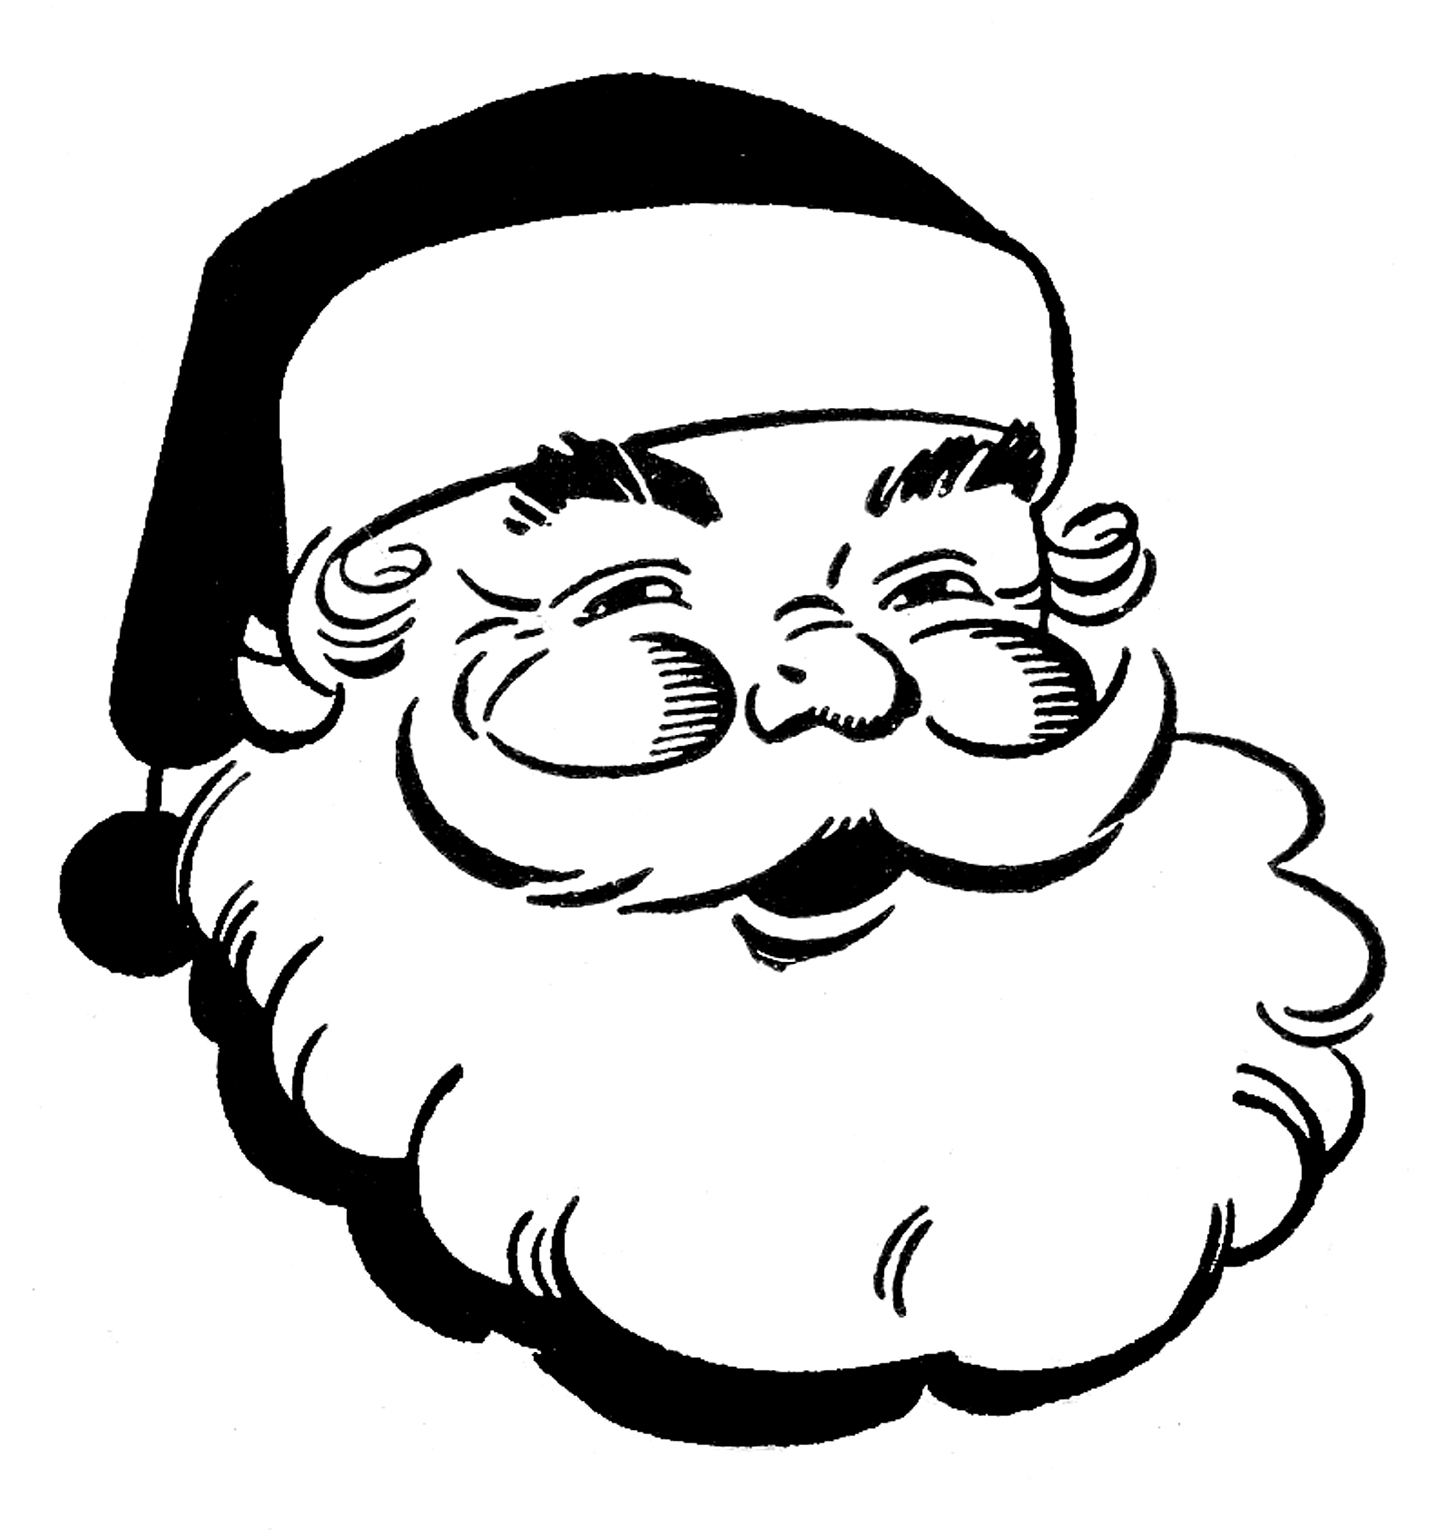 Free Christmas Clip Art Borders Black And White - www.proteckmachinery.com